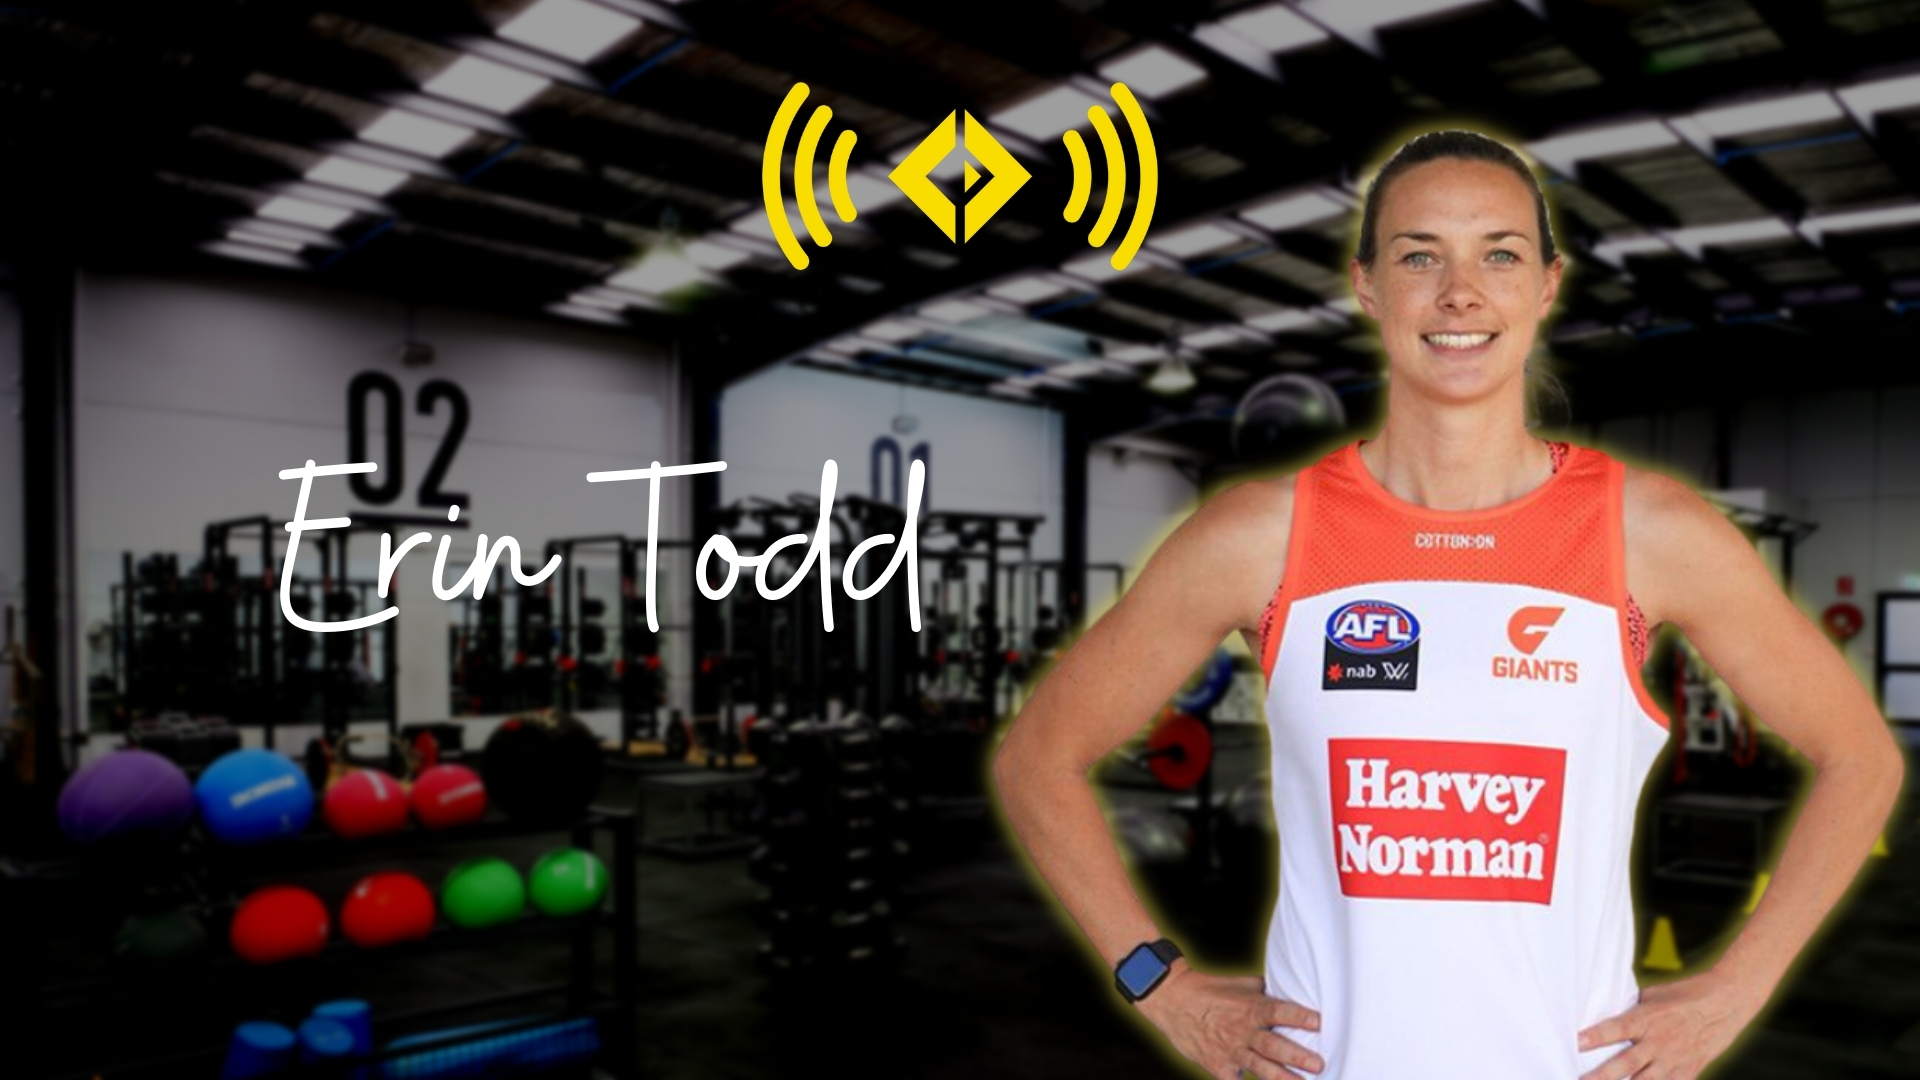 #170 - Erin Todd On Podiatry, Starting Medical Clinics & AFLW - Part 1